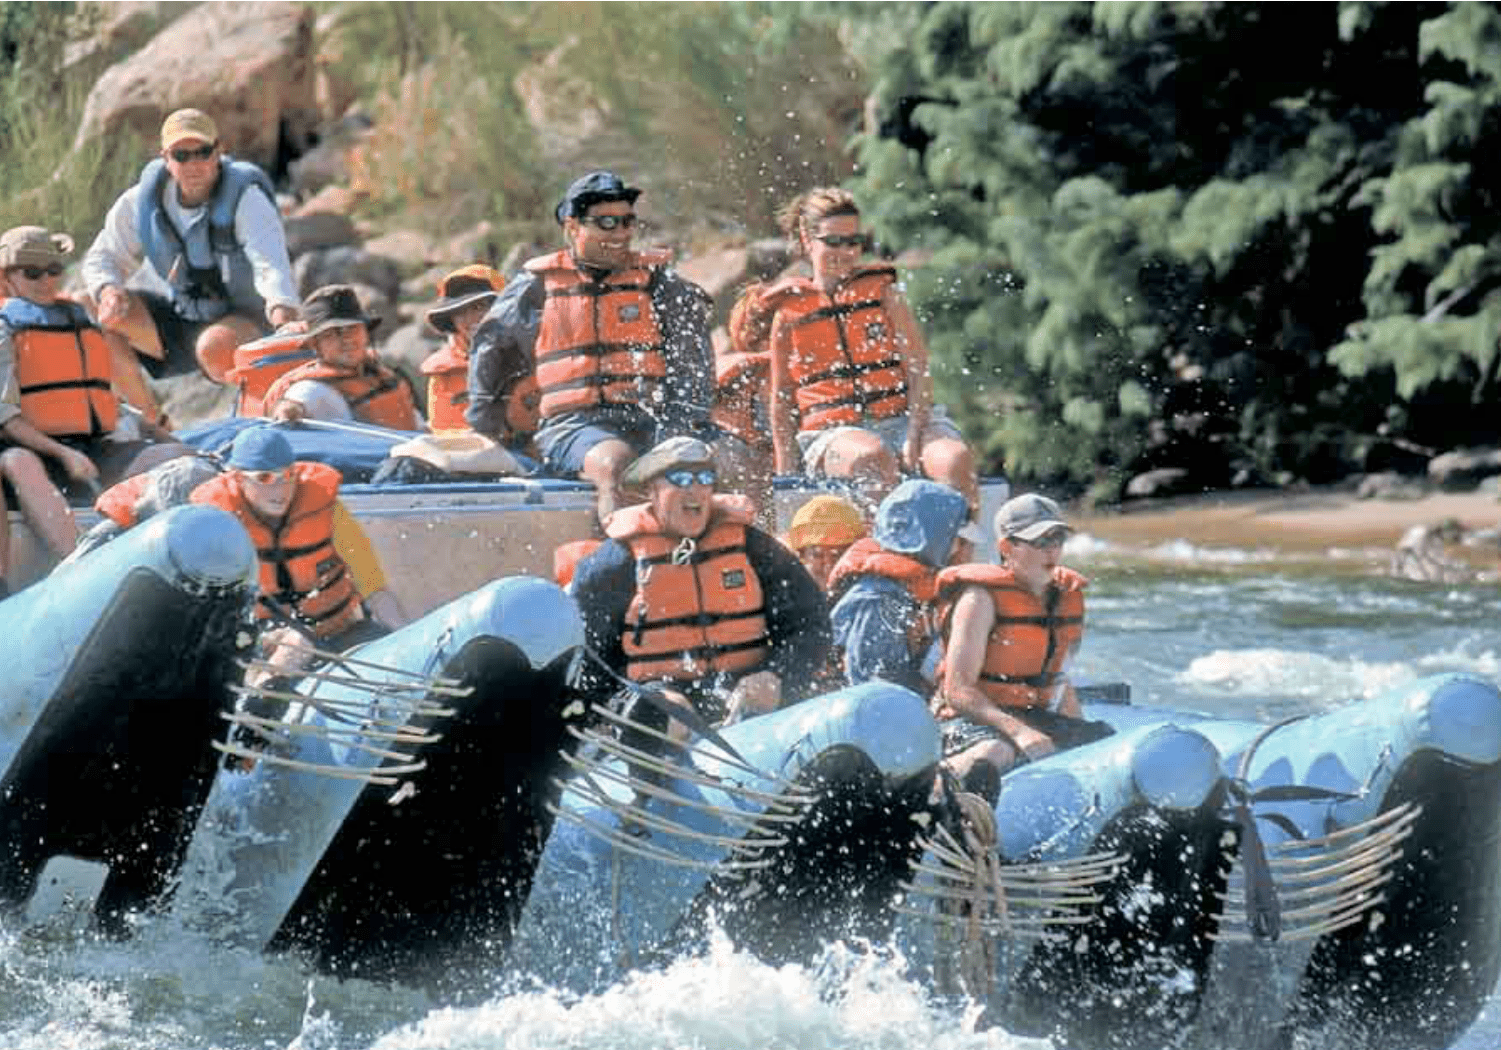 Family Rafting Trip in Grand Canyon